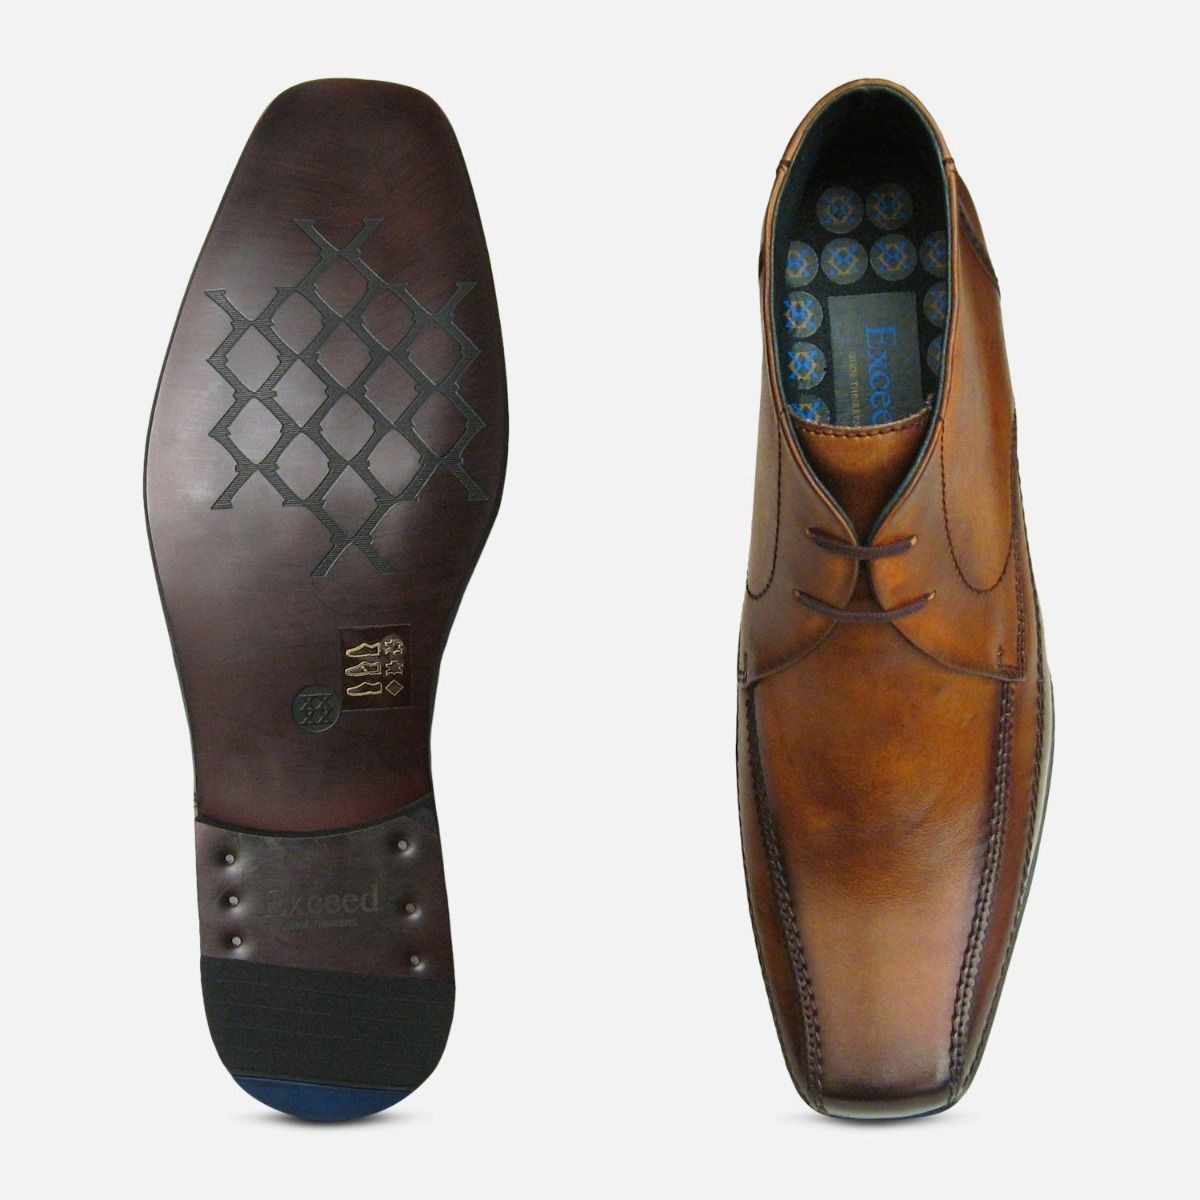 Exceed Tan Chukka Boots for Men UK